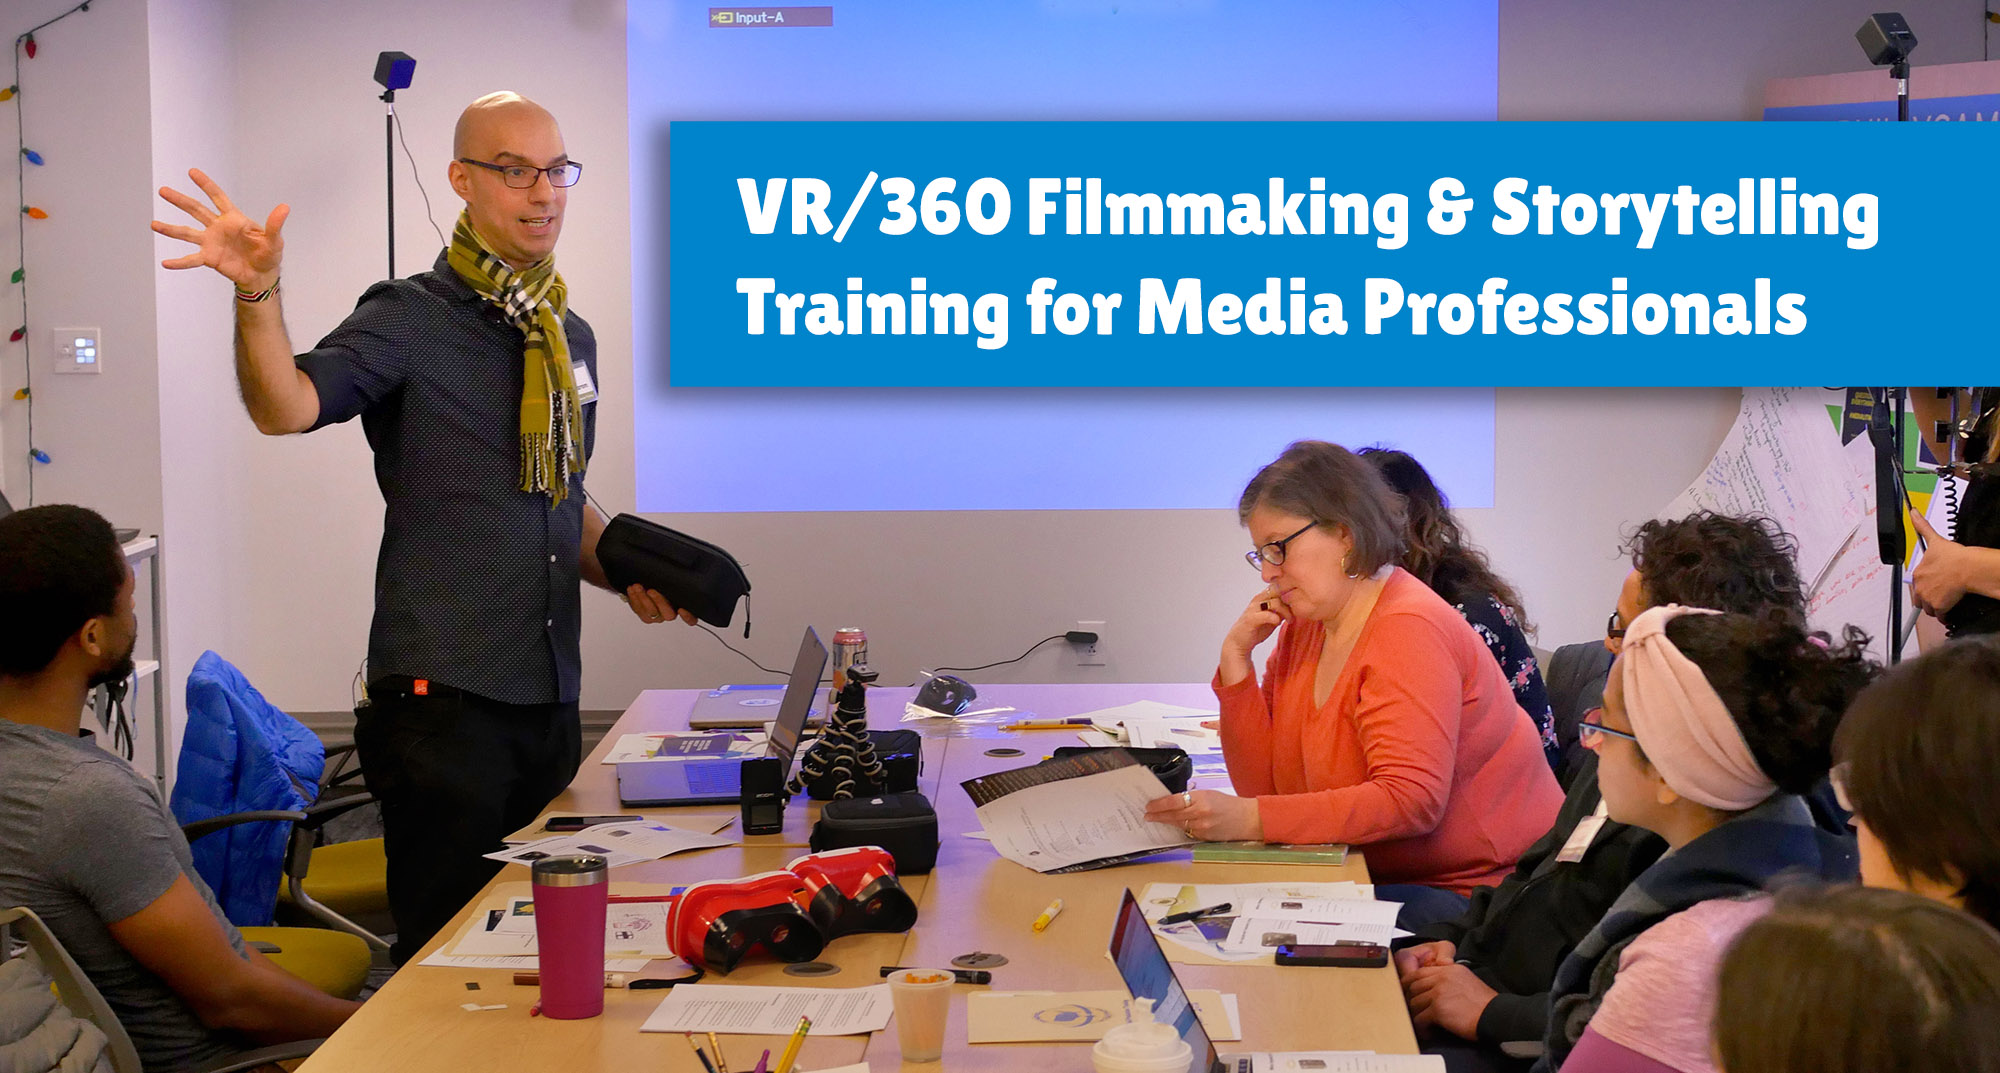 Everyone can learn VR - Join us on Thursday, August 22nd, 2019 from 9:30-4:30pm in the greater Boston metro area to learn the basics of VR storytelling, understand how emerging media is different than traditional storytelling, journalism, and learn filmmaking tips, trick, equipment and editing with our supportive and expert trainers! This session is focused on supporting educators, media makers and creators.Tuition: $200; partial scholarships are available. Discount for ACM members.Register here